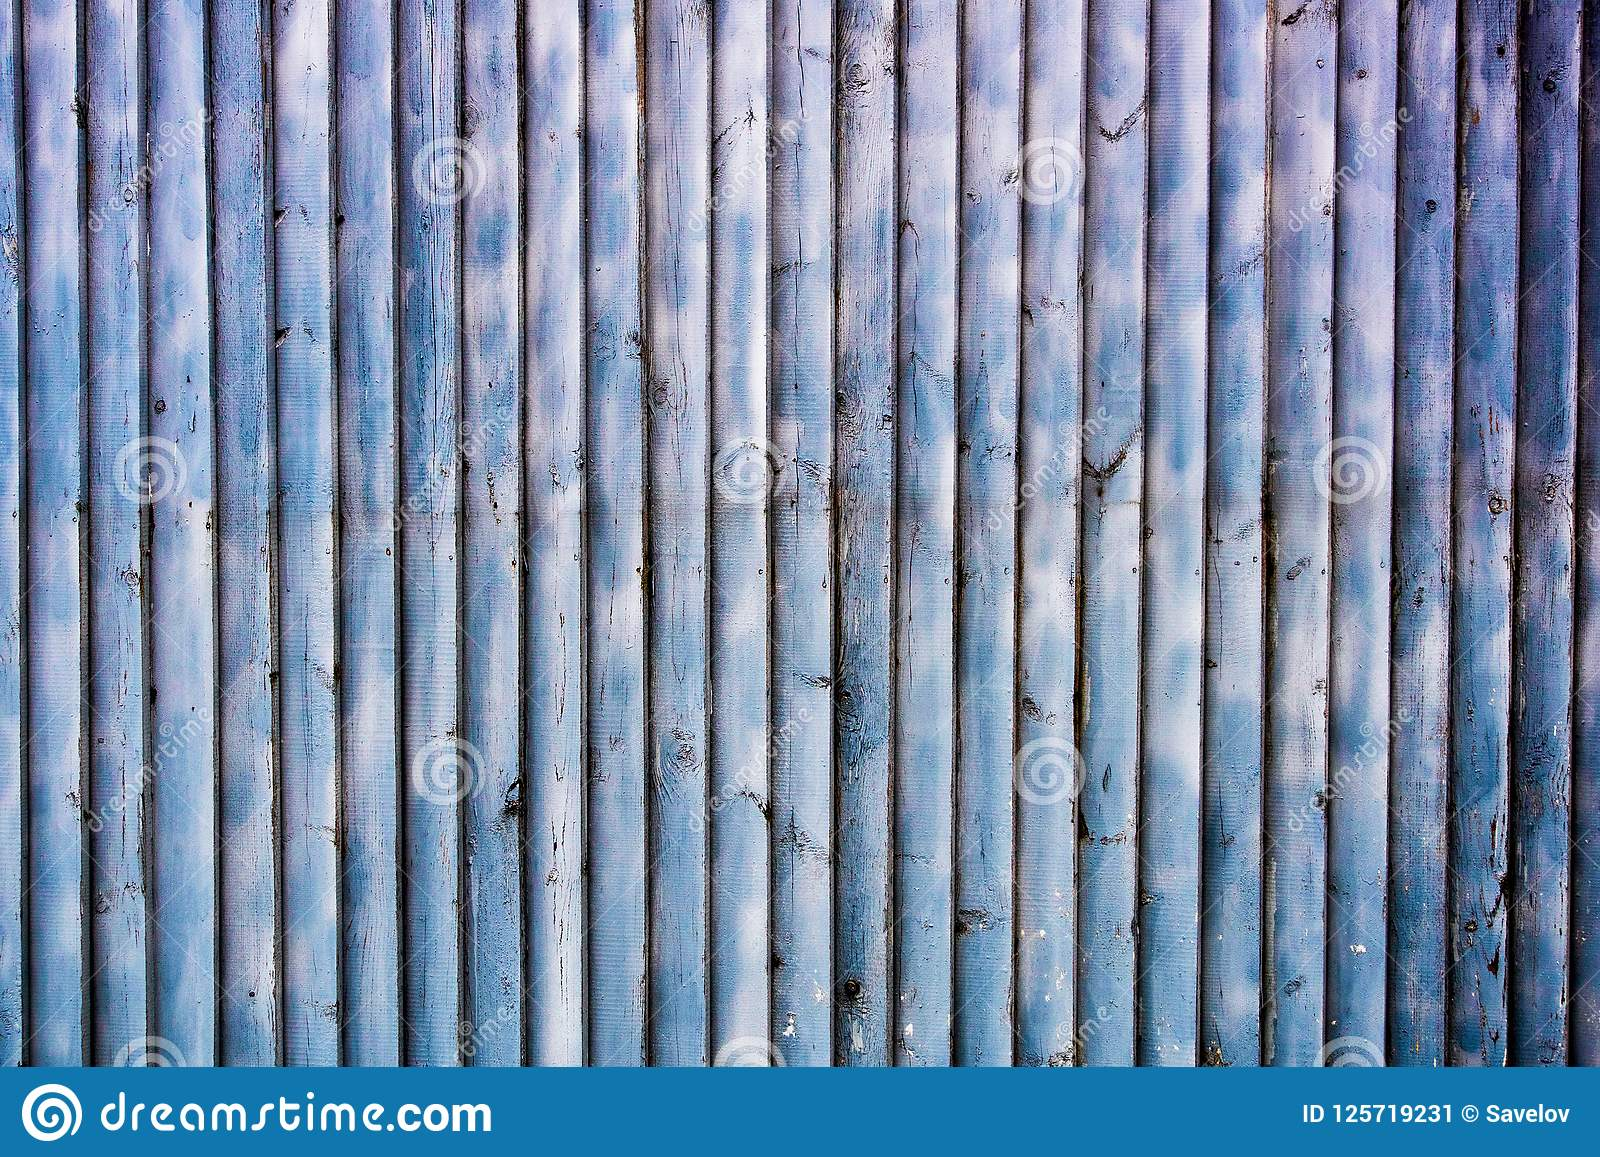 Vertical Wood Slat Wall Blue Wooden Wall From Vertical Slats Stock Image Image Of